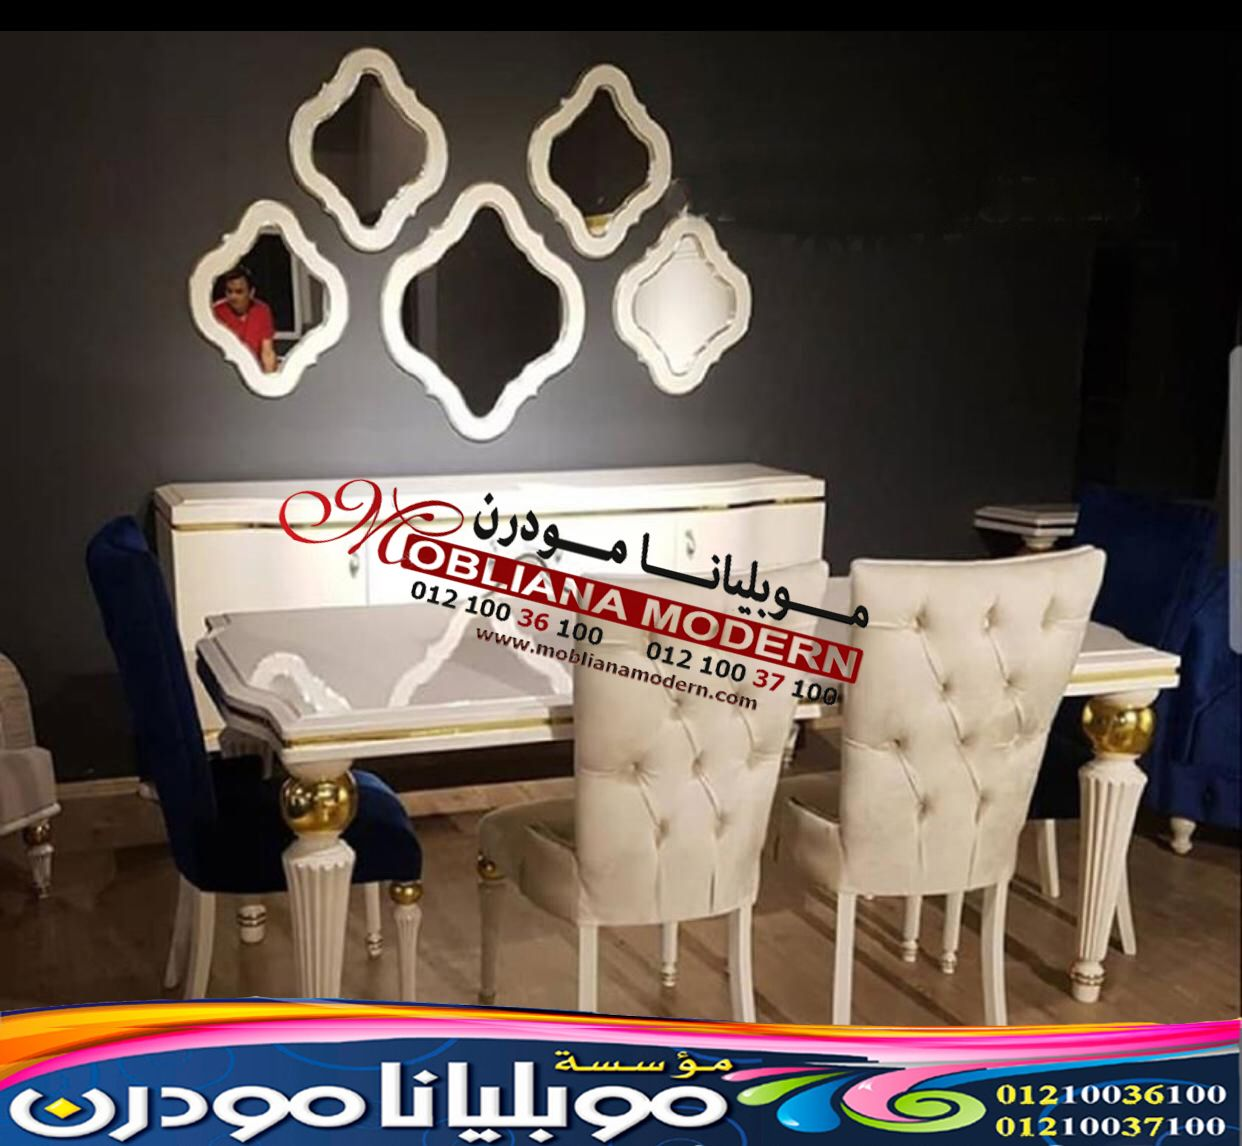 سفرة موبليانا سفرة مودرن كاملة 2022 Dinning Room Ideas Royal Furniture Home Decor Decals Decor